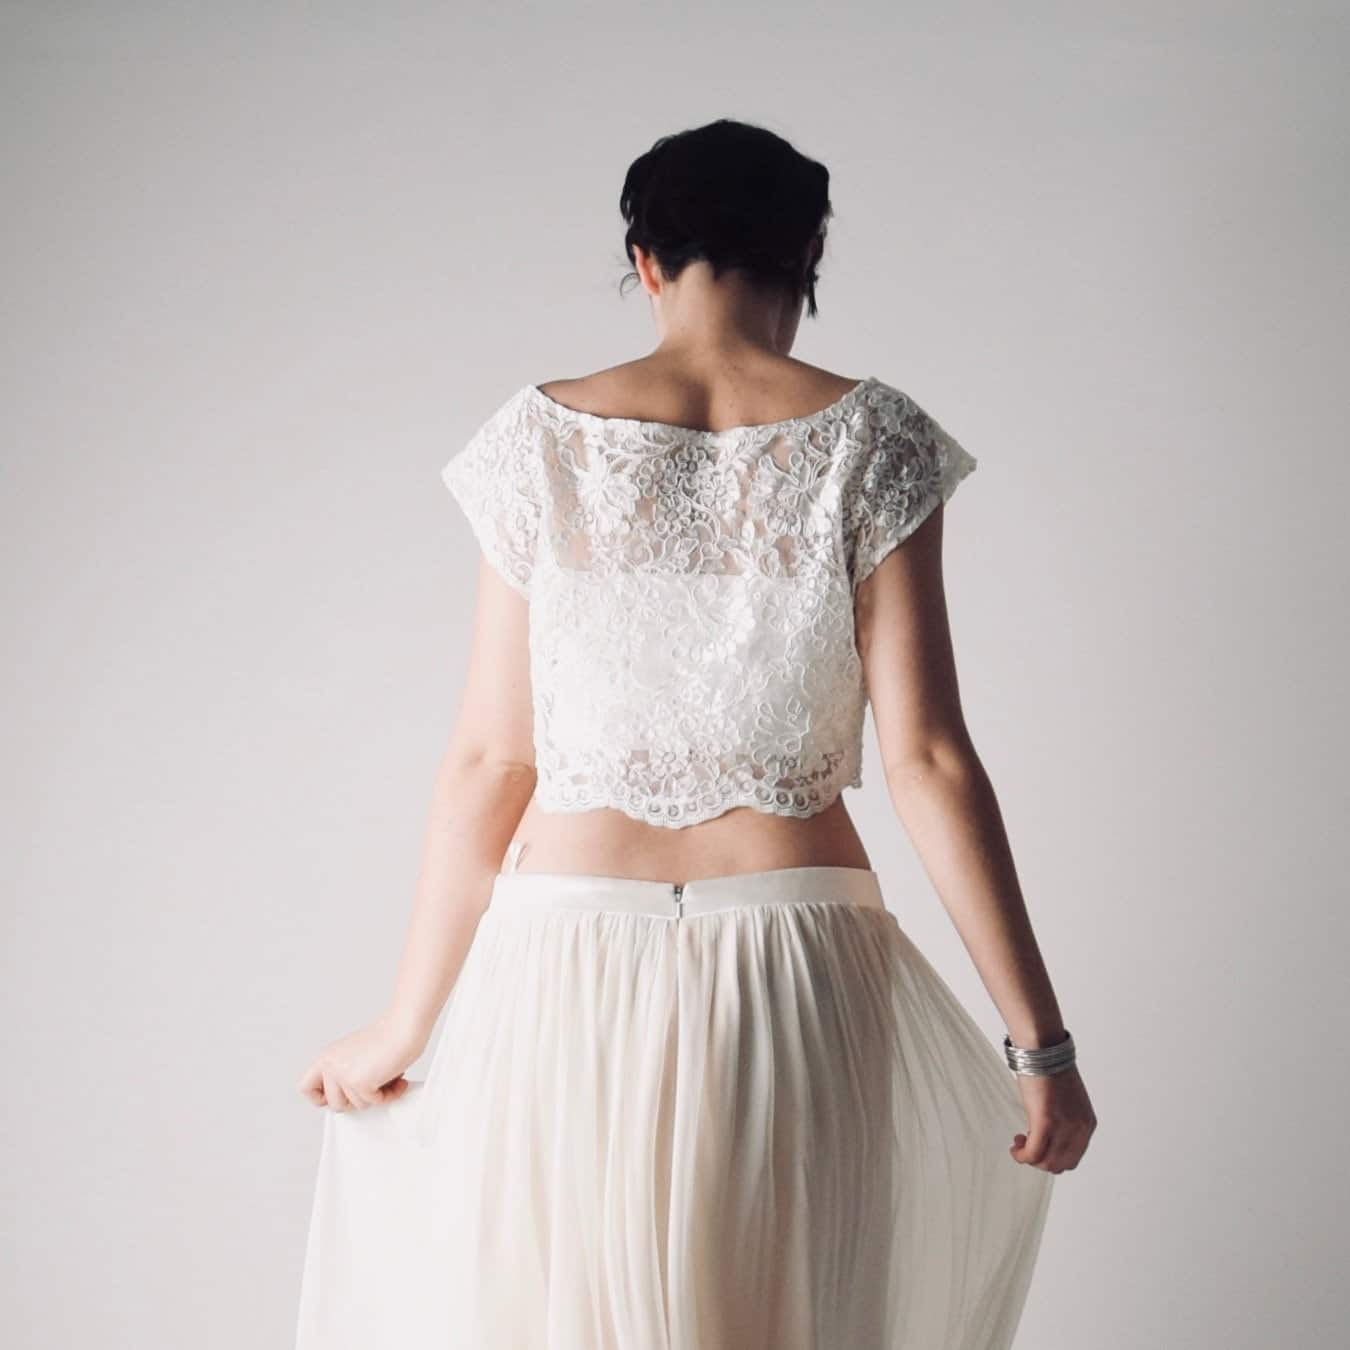 Parsley ~ Boho lace crop top ~ Handmade English lace top by Larimeloom